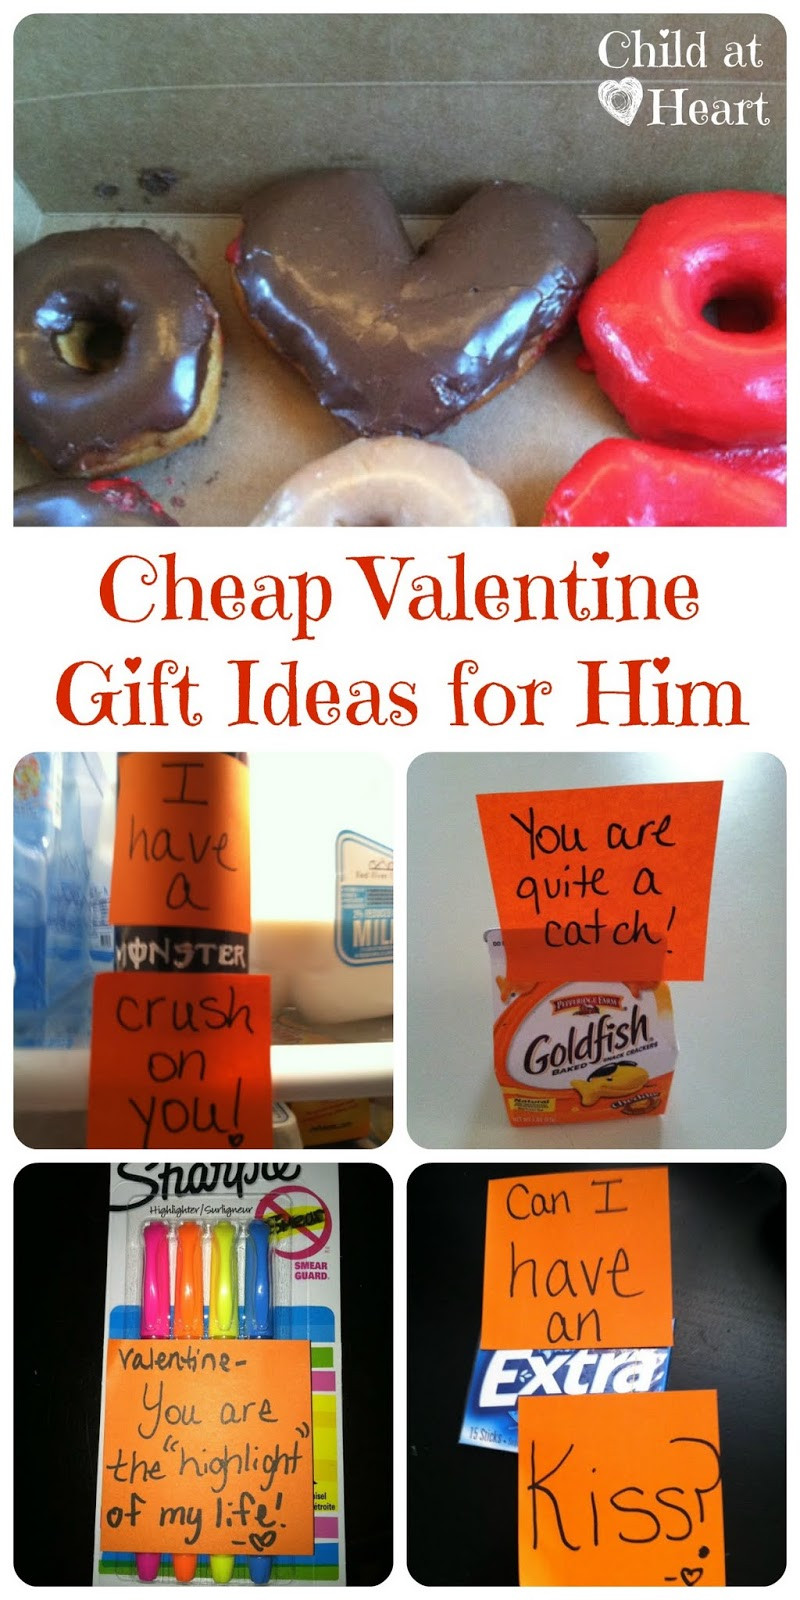 Best ideas about Valentine Gift Ideas For Husband . Save or Pin Cheap Valentine Gift Ideas for Him Child at Heart Blog Now.